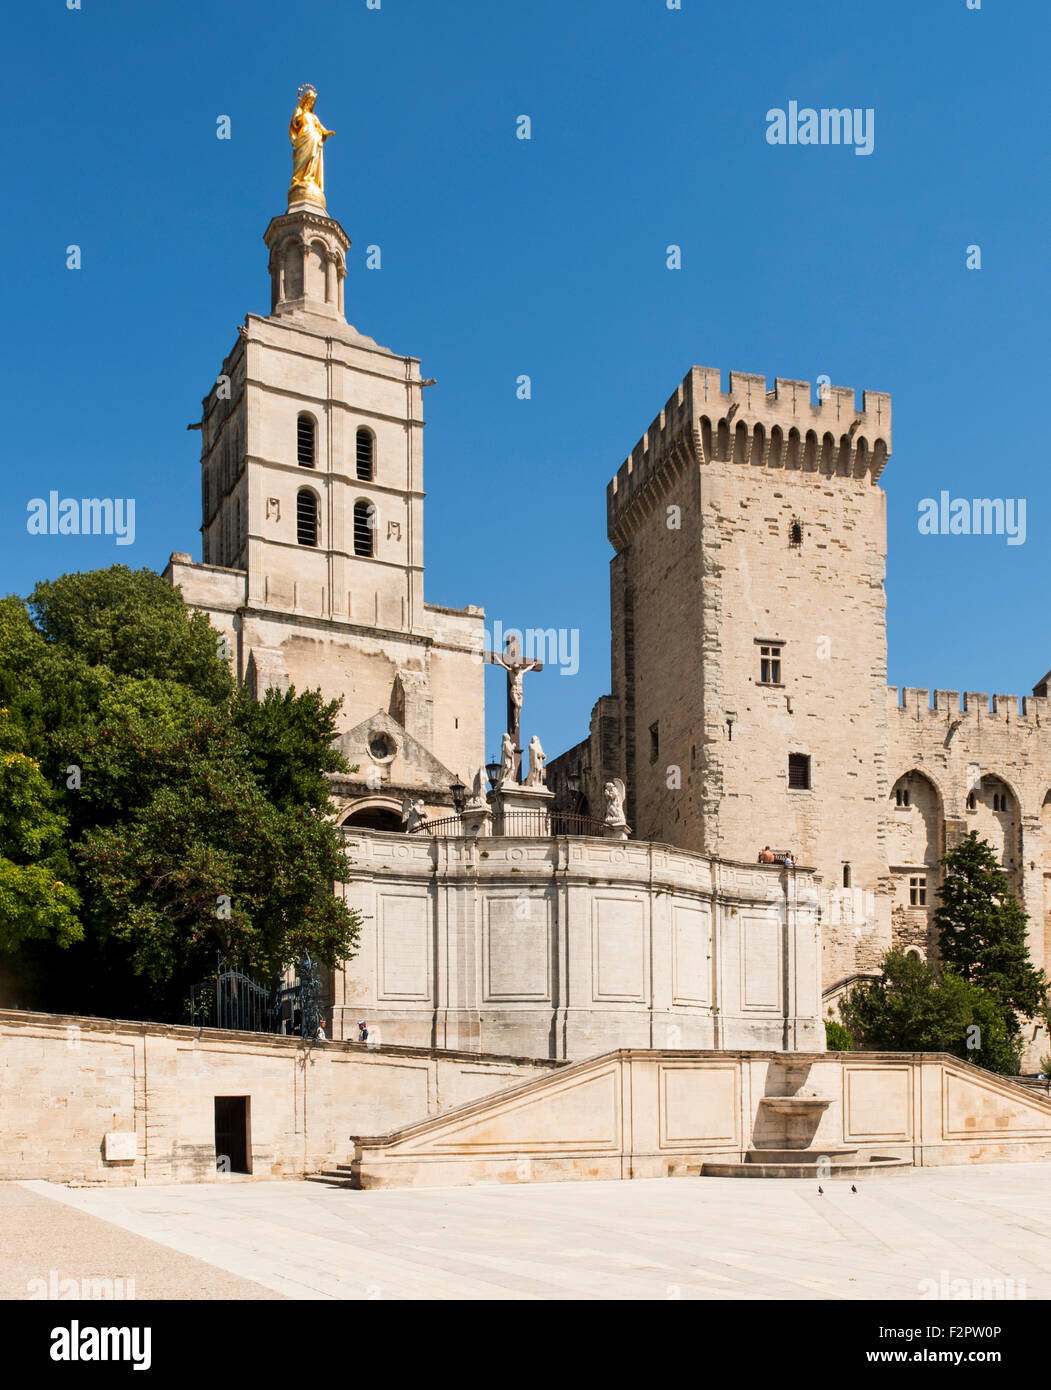 Palais des Papes, Papacy from 1309-1423 Avignon Departement Vaucluse Provence France Europe - Stock Image